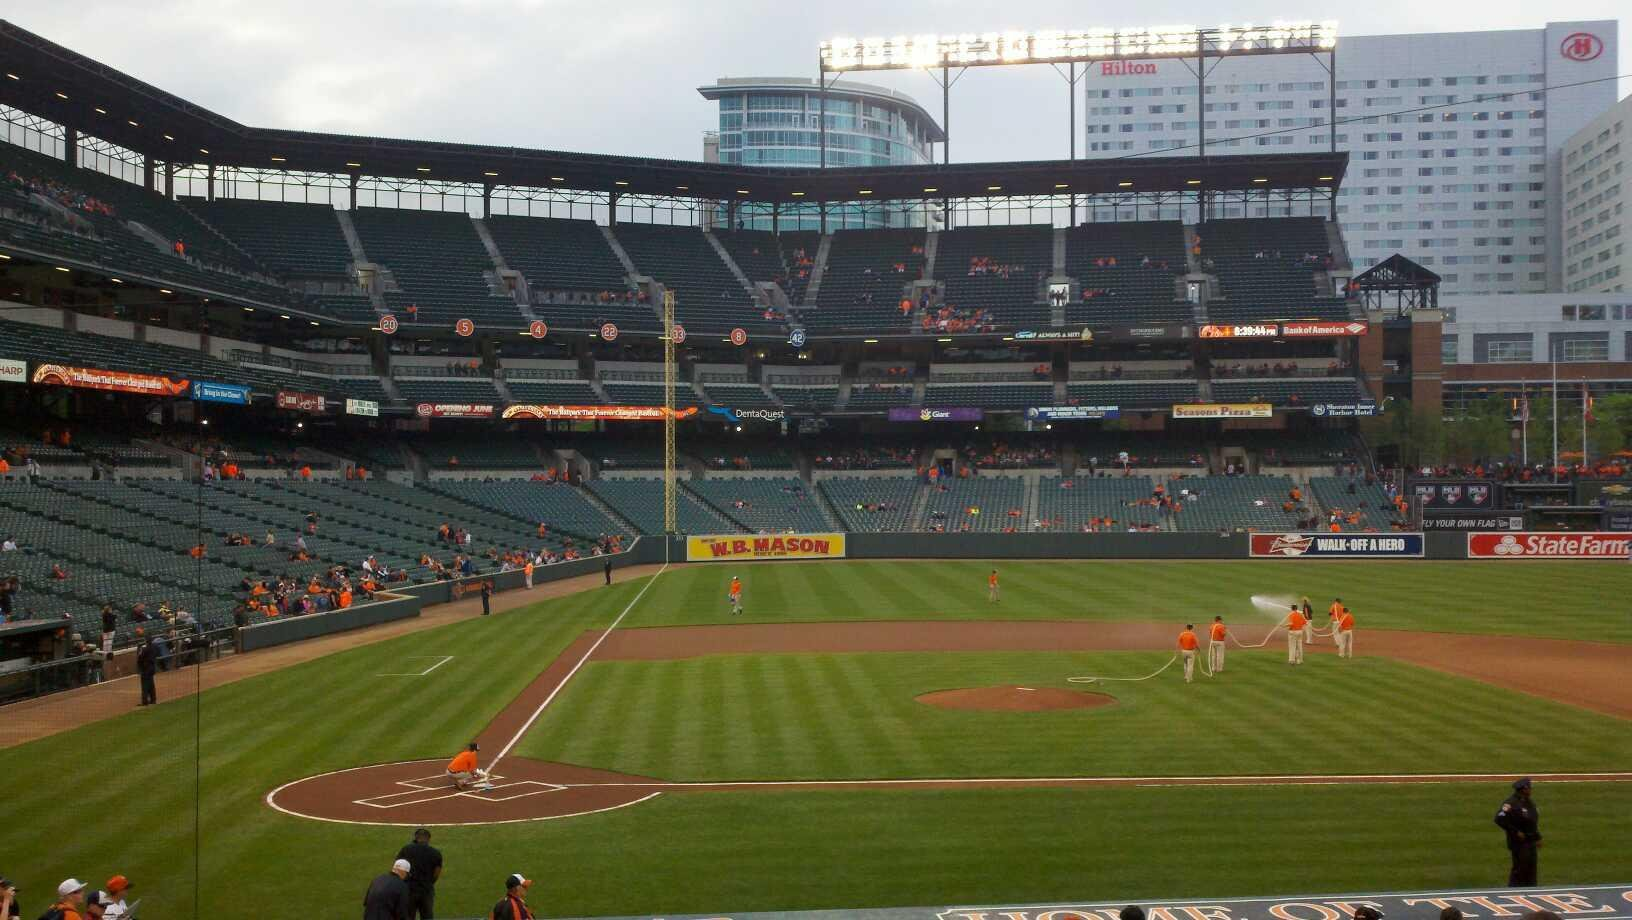 Oriole Park at Camden Yards Section 26 Row 21 Seat 10